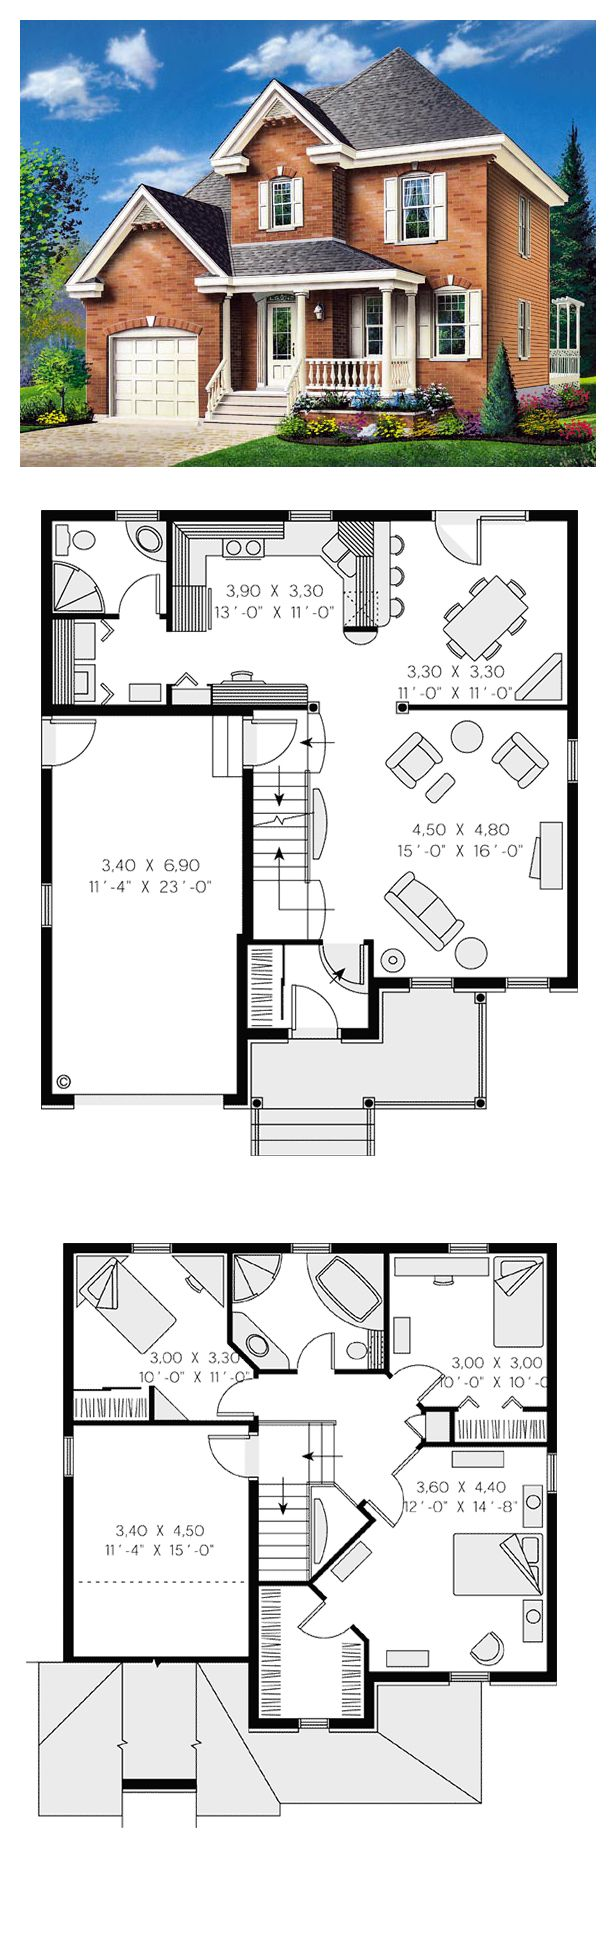 Colonial House Plan 65280 | Total Living Area: 1448 sq. ft., 3 bedrooms & 2 bathrooms. Distinctive elements: Built-ins, front porch, unfinished bonus space on second level above garage. #houseplan #colonialstyle